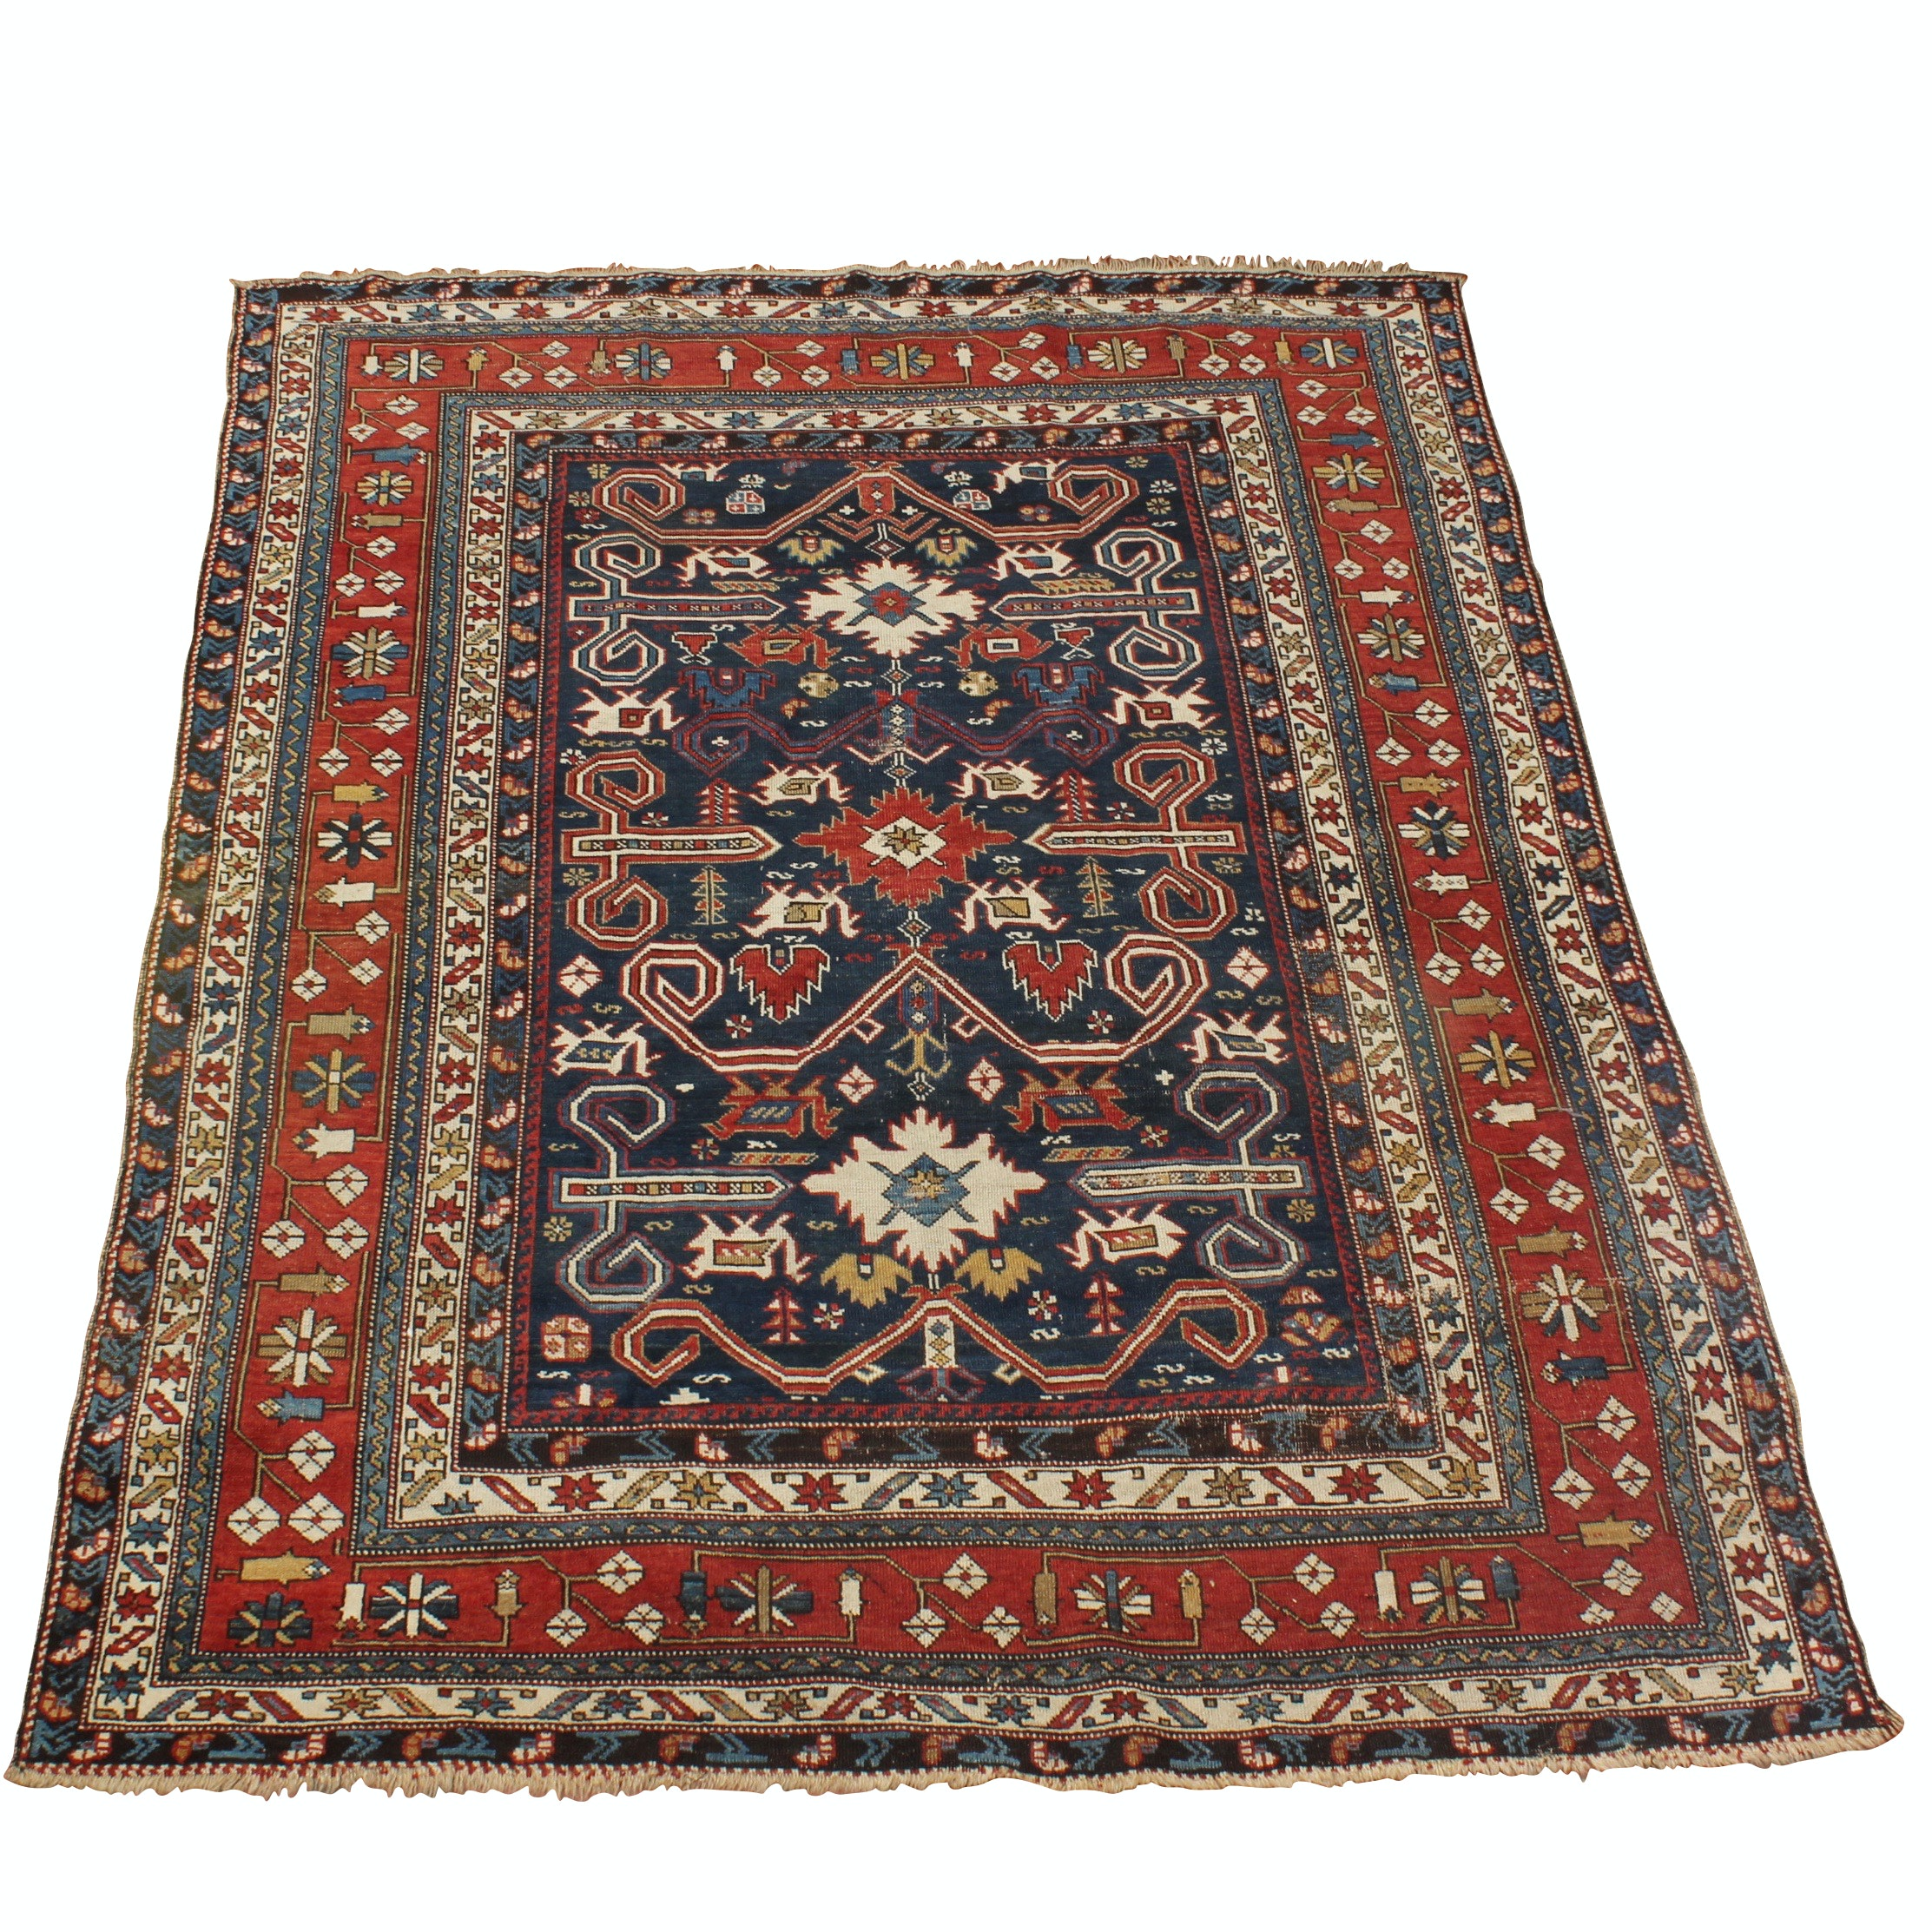 Hand-Woven Flat Weave Central Asian Style Area Rug